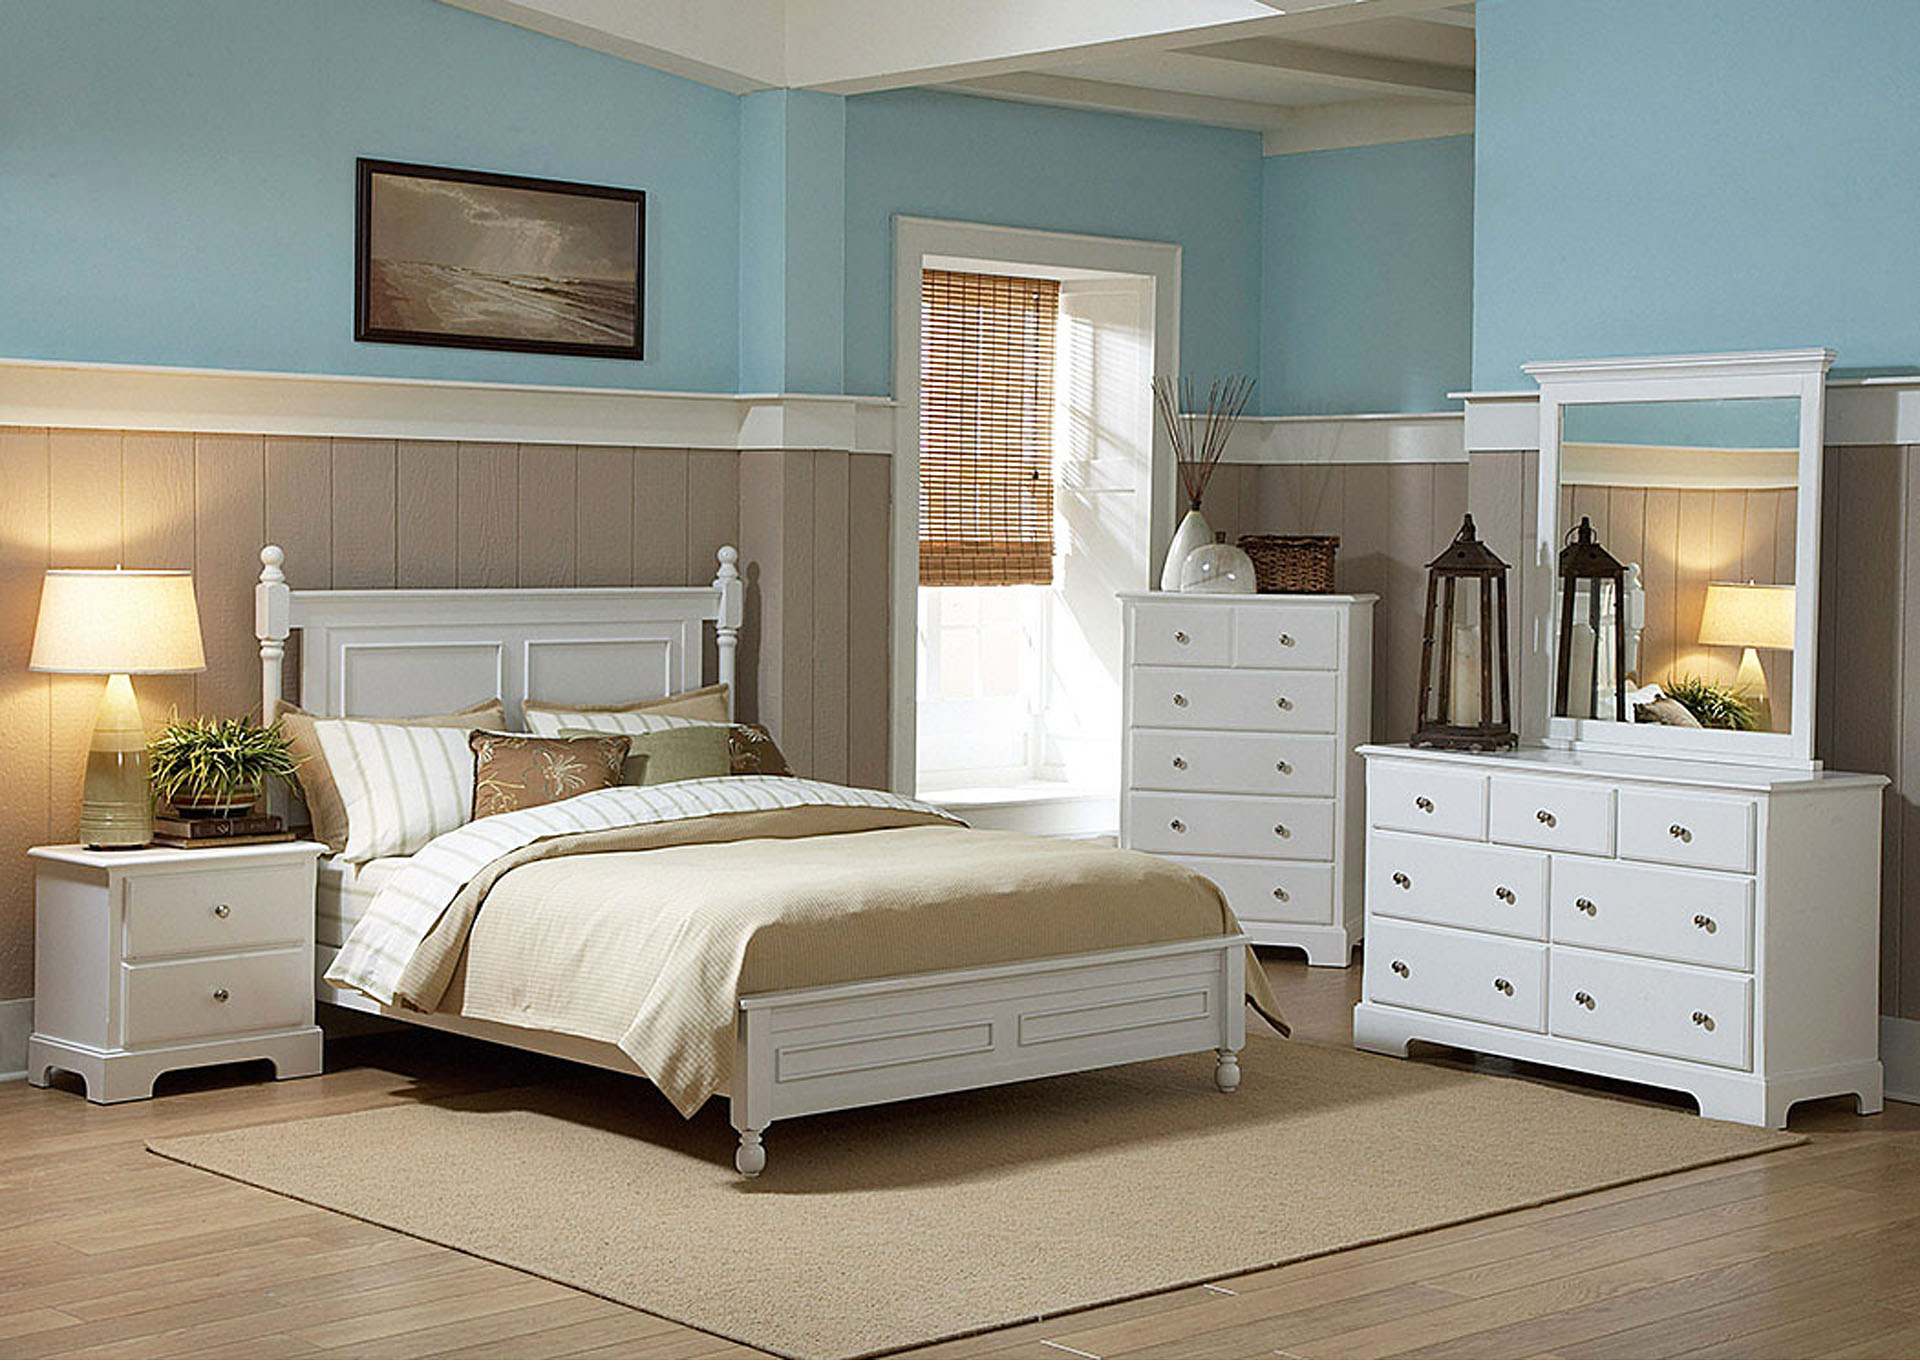 Morelle White Queen Bed,Homelegance